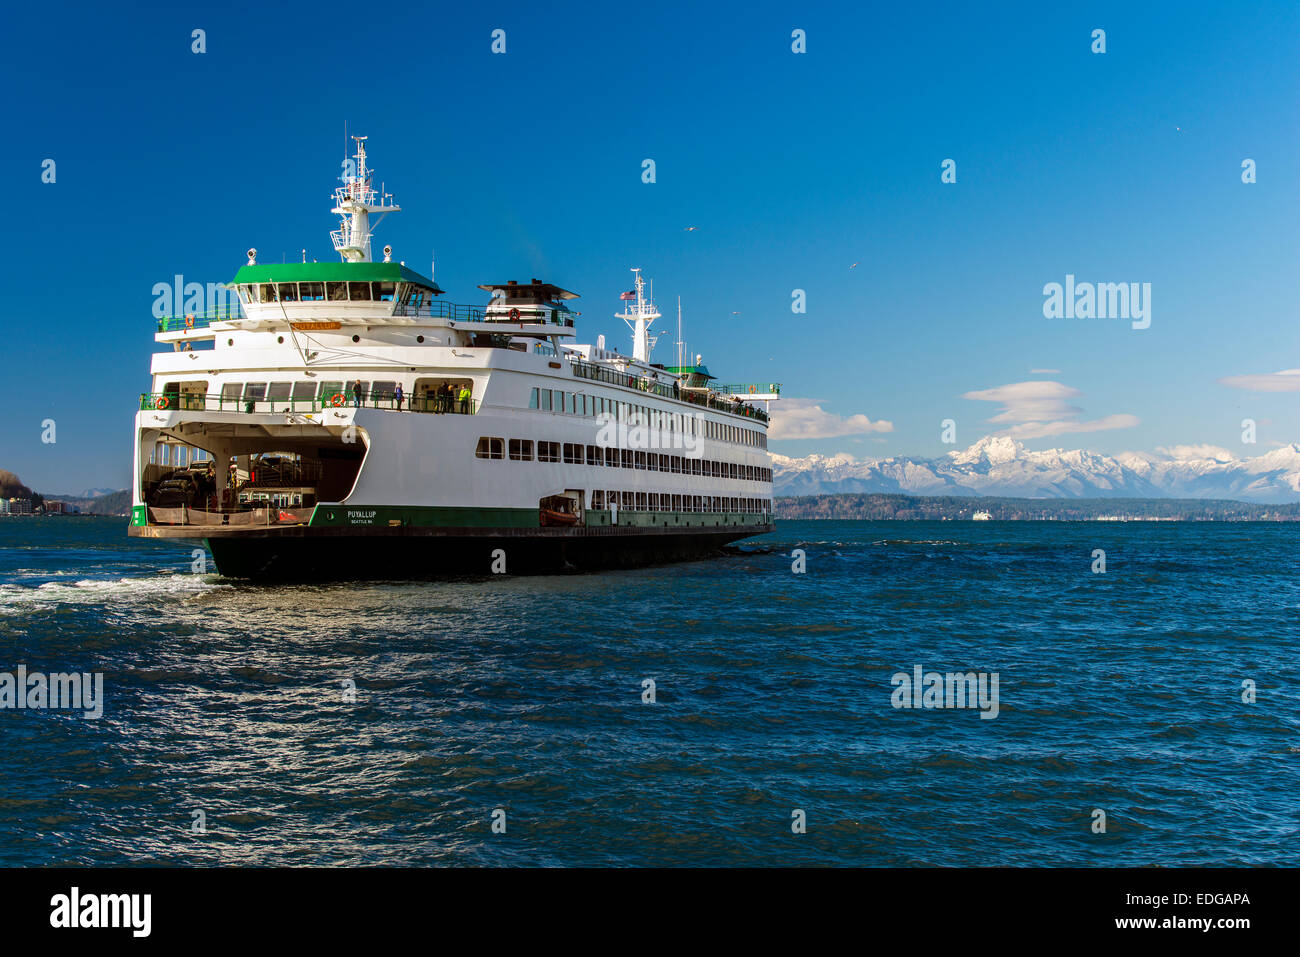 Washington State Ferry with snowy mountains of Olympic Peninsula in the background, Seattle, Washington, USA - Stock Image